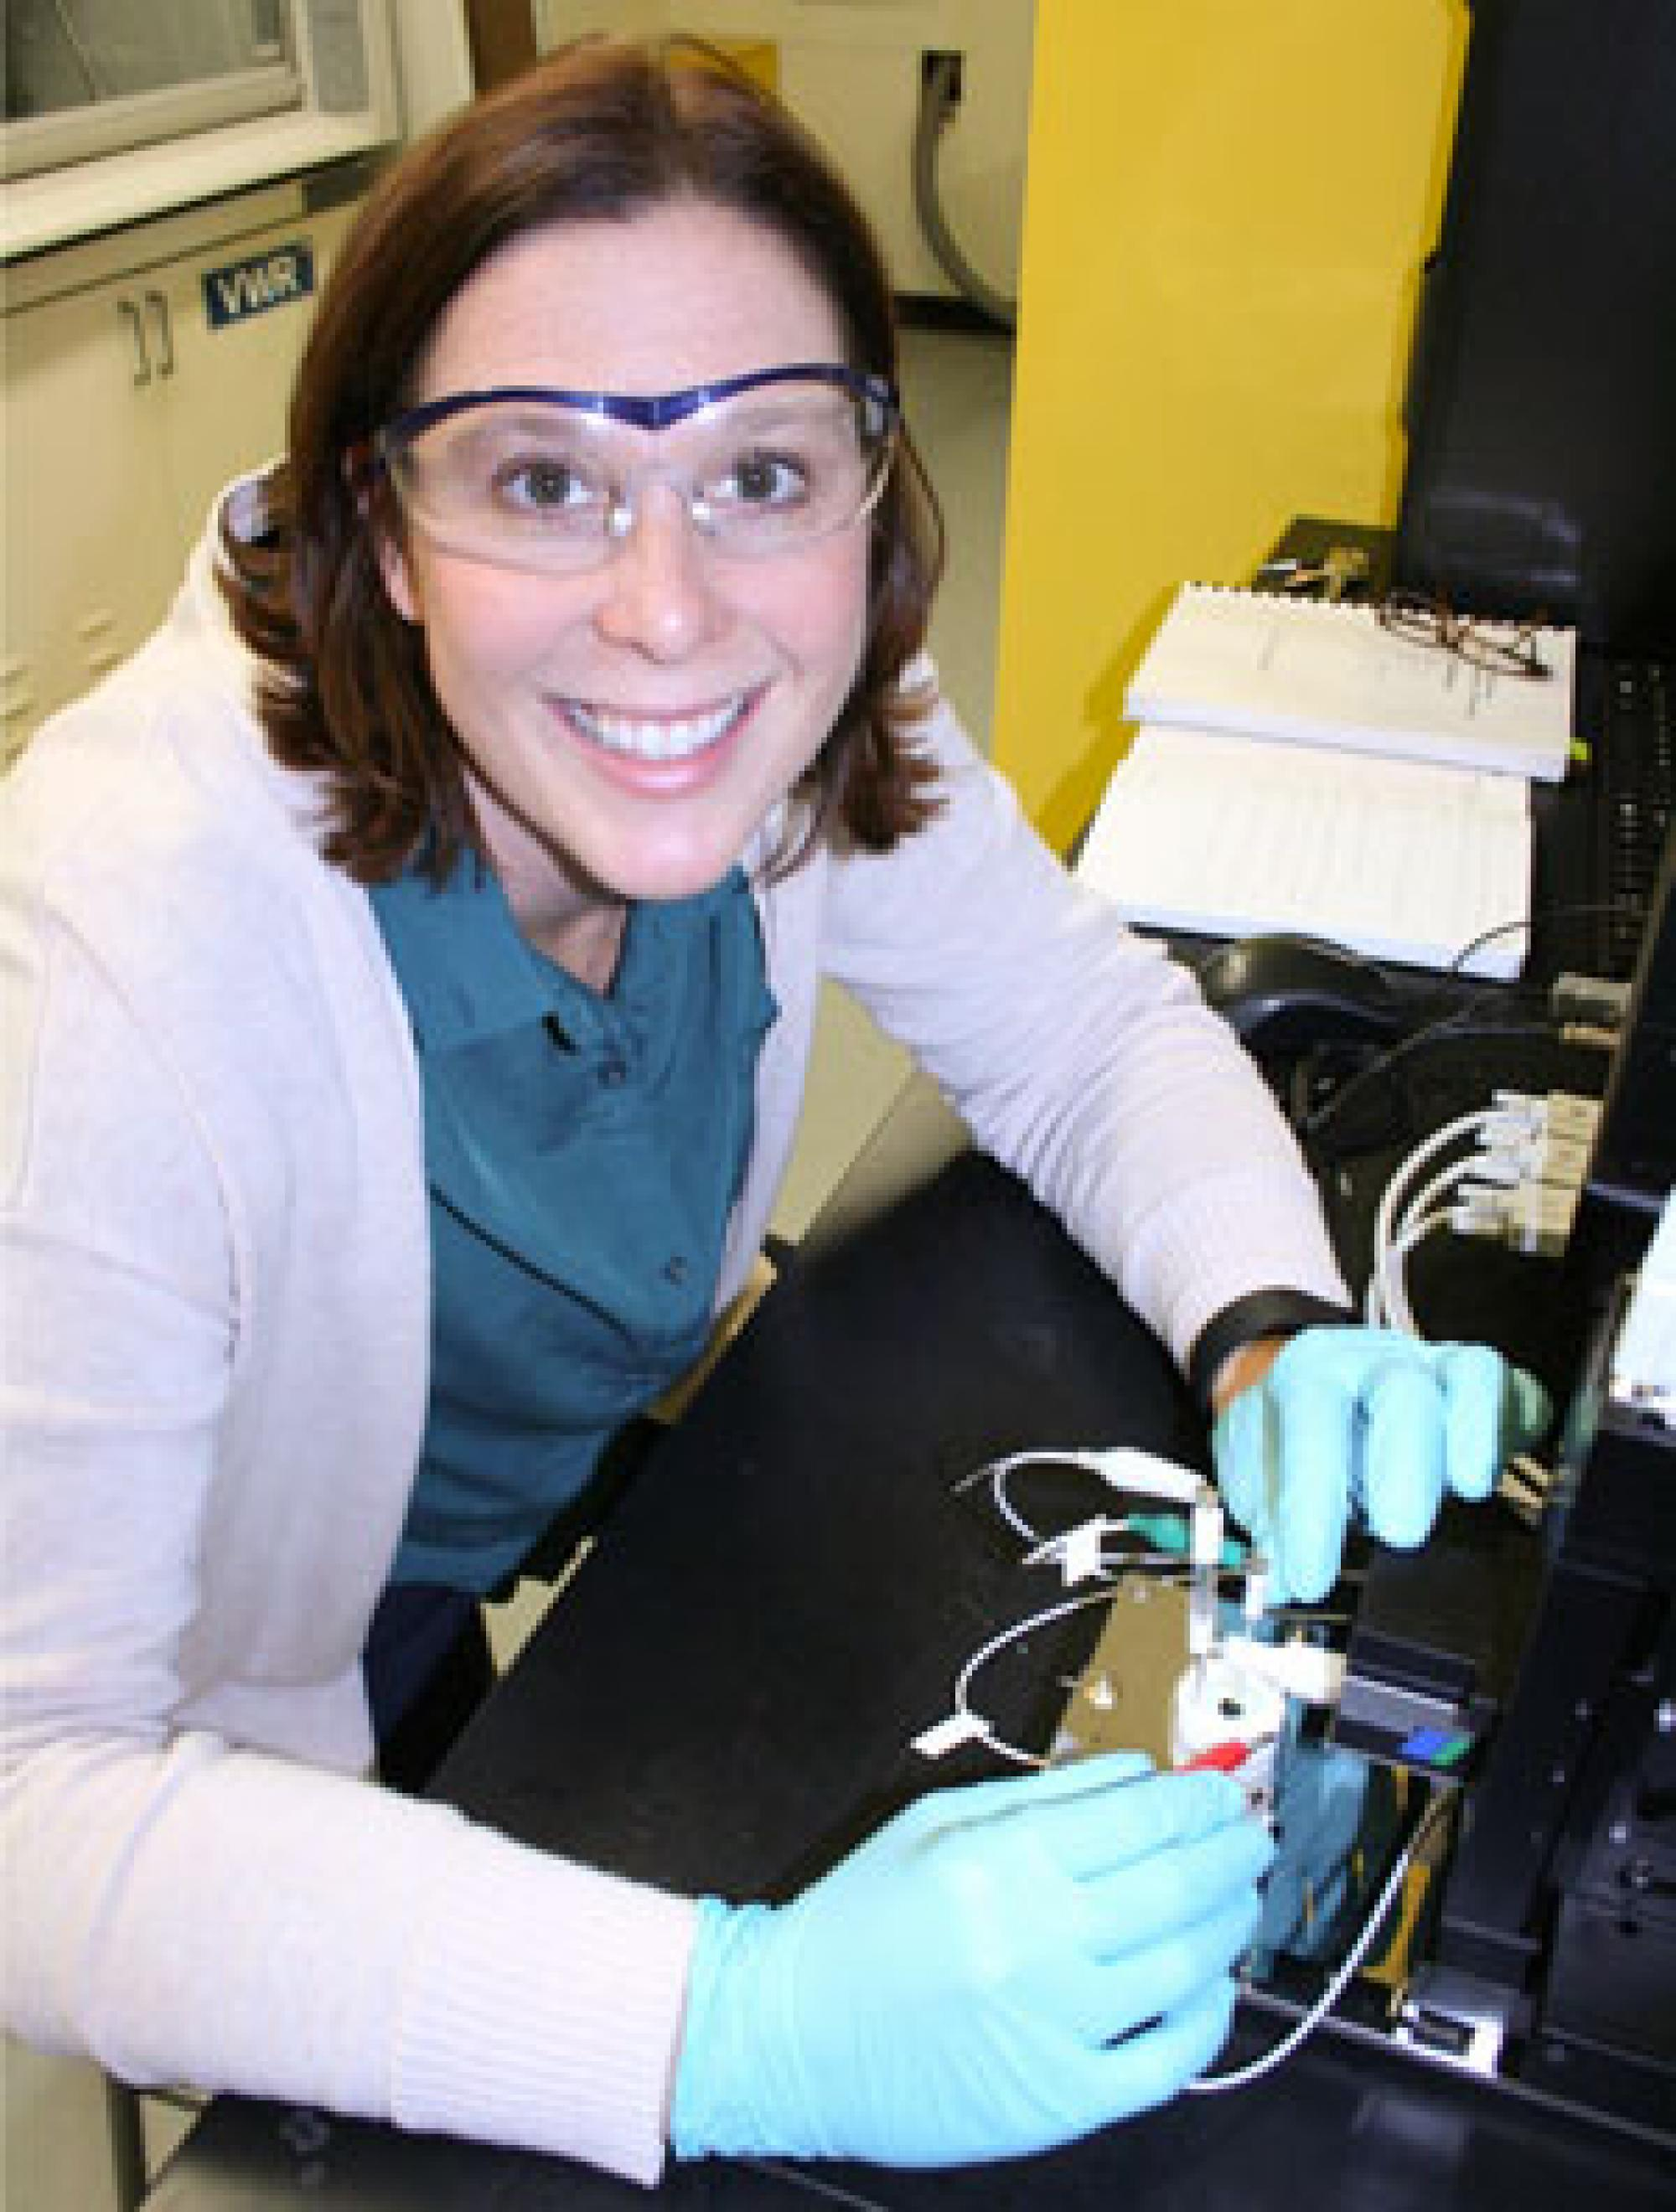 """""""Having two women principal investigators on a project like this is really cool,"""" says assistant professor Erin Ratcliff, pictured in her lab. Ratcliff works to increase diversity in engineering and serves on the UA Commission on the Status of Women."""